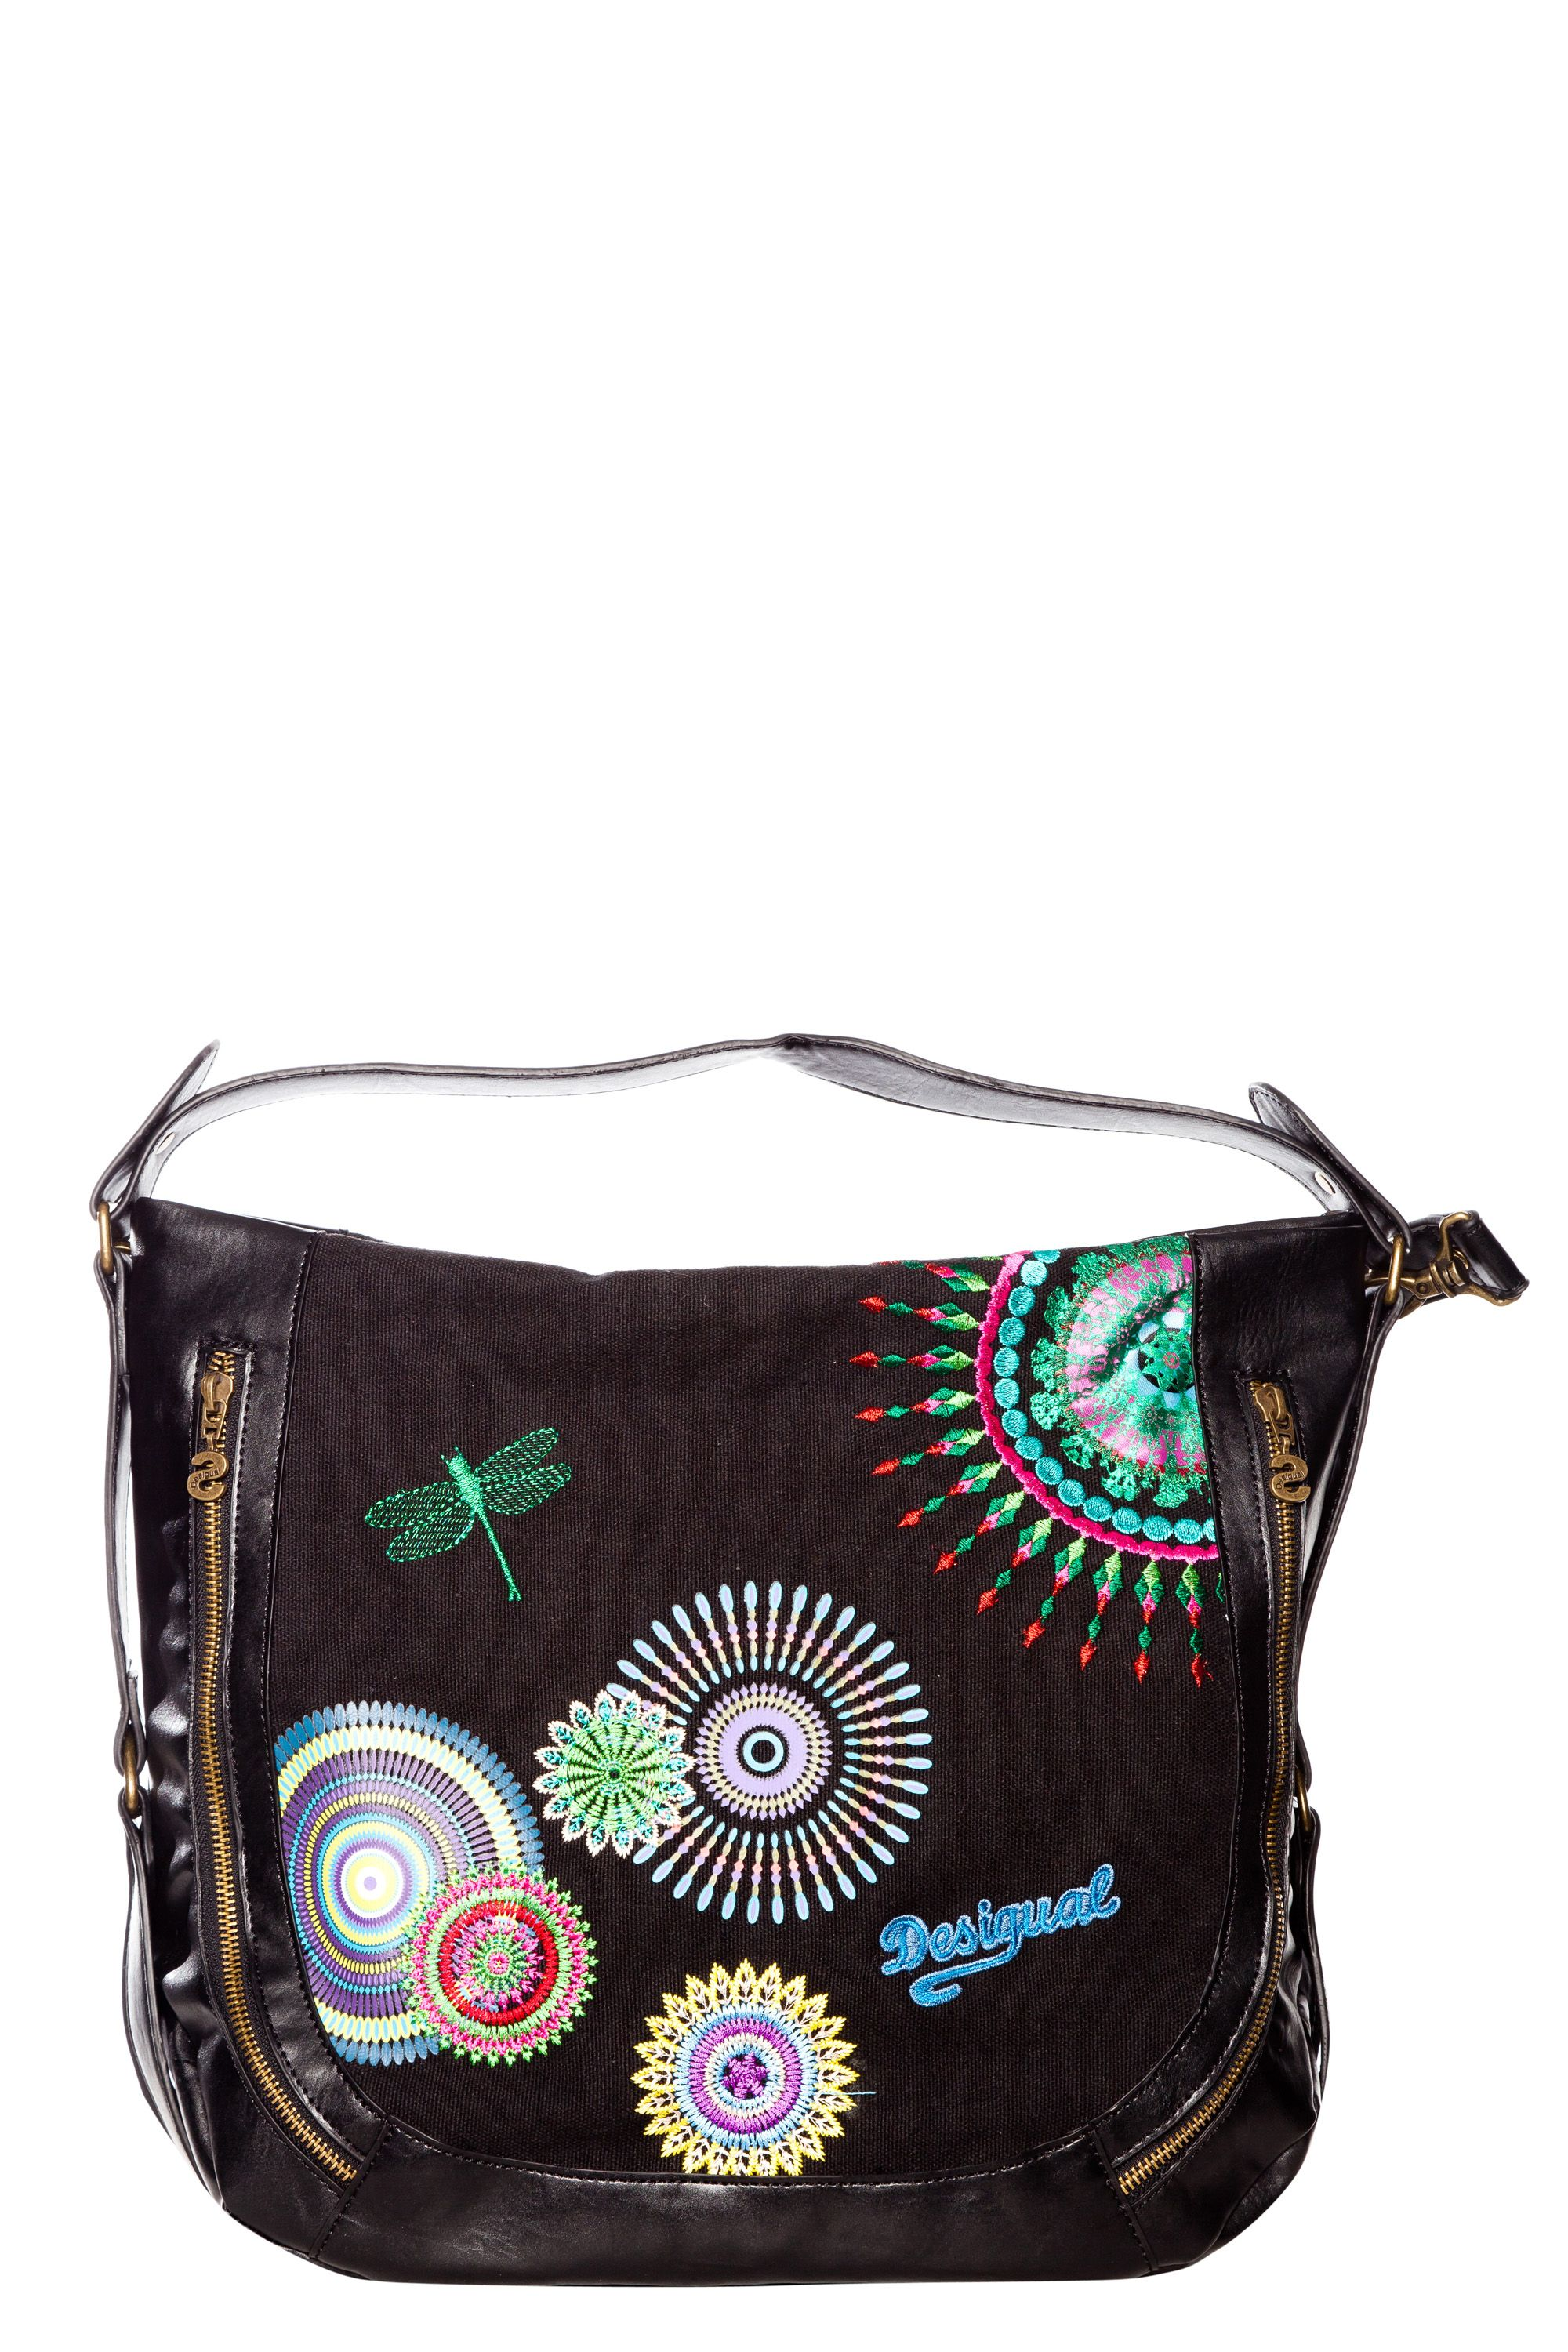 Rombo libelula shoulder bag